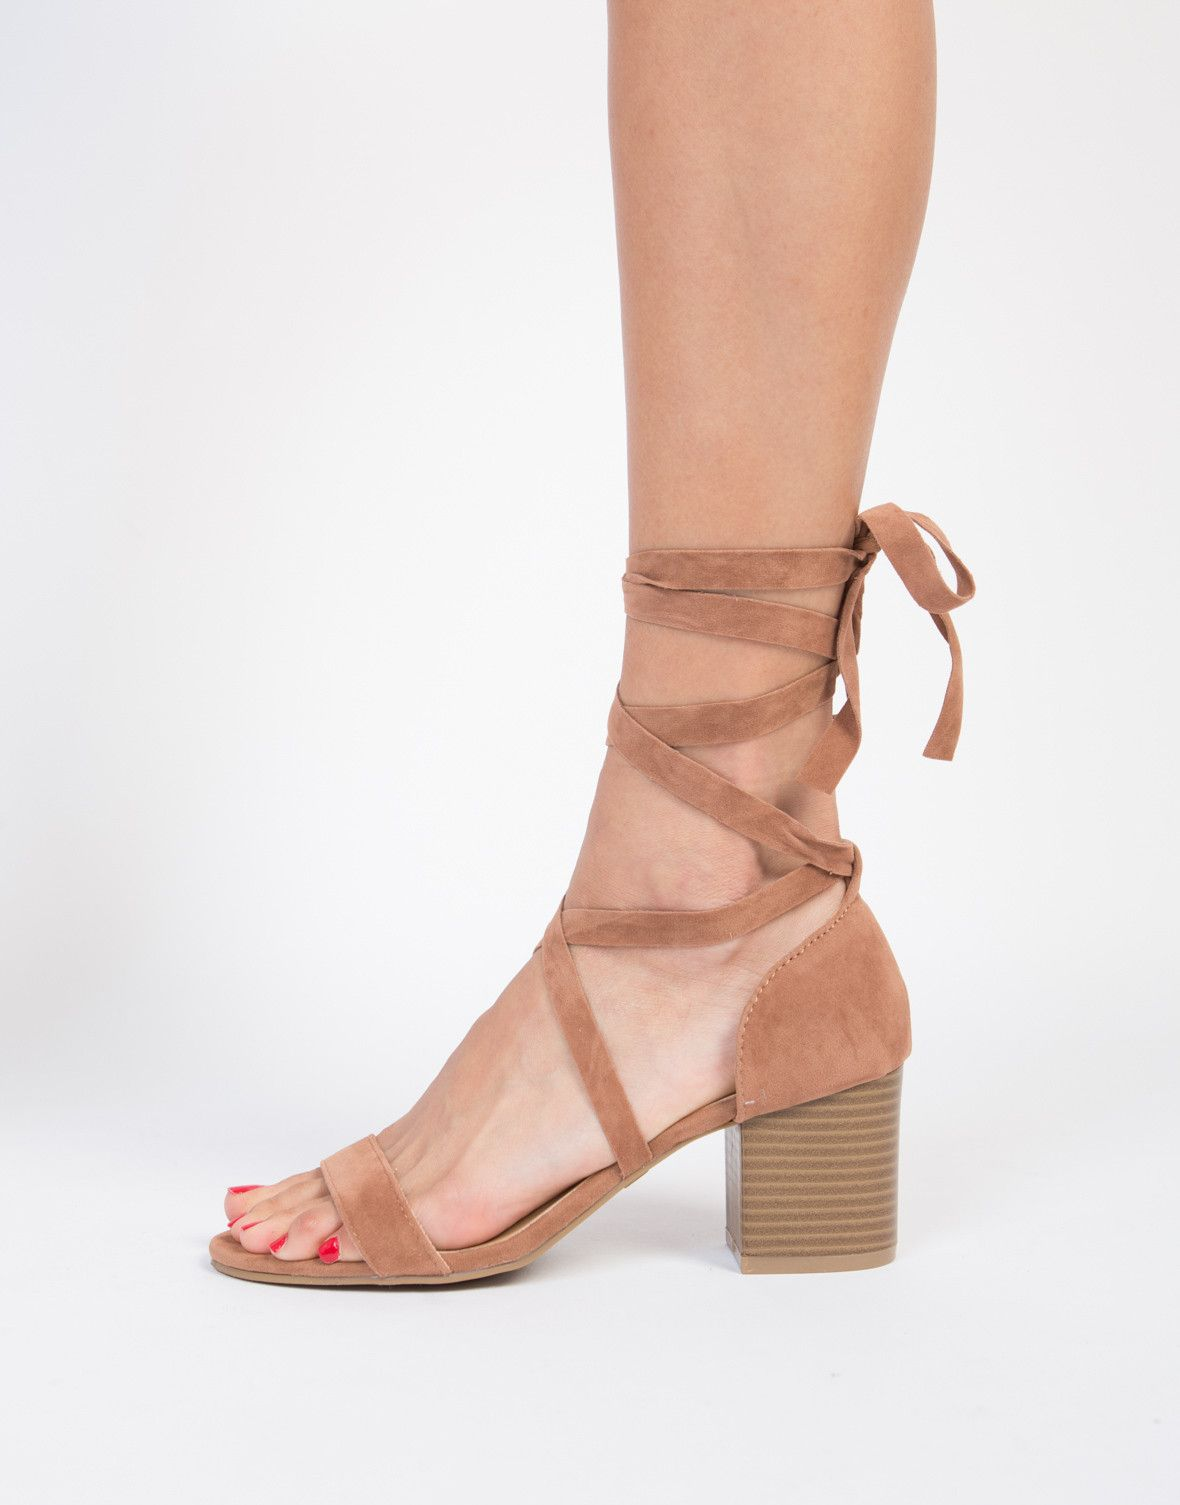 701b73d49f0 Your new favorite pair of sandals are officially here. These camel Lace-Up  Block